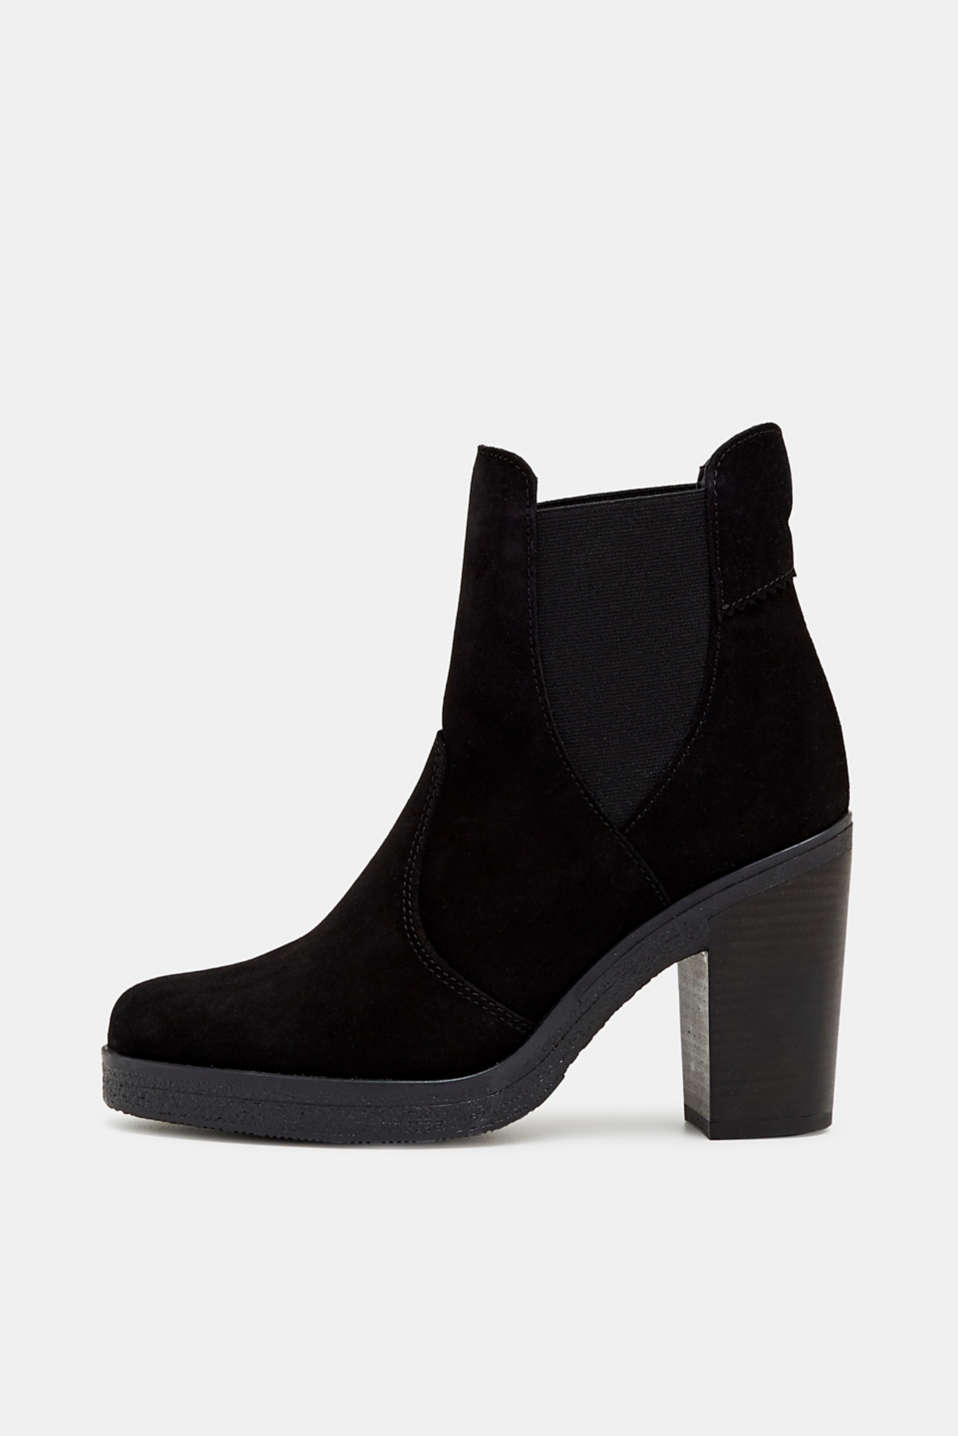 Esprit - Bottines à talons bottier, en cuir velours